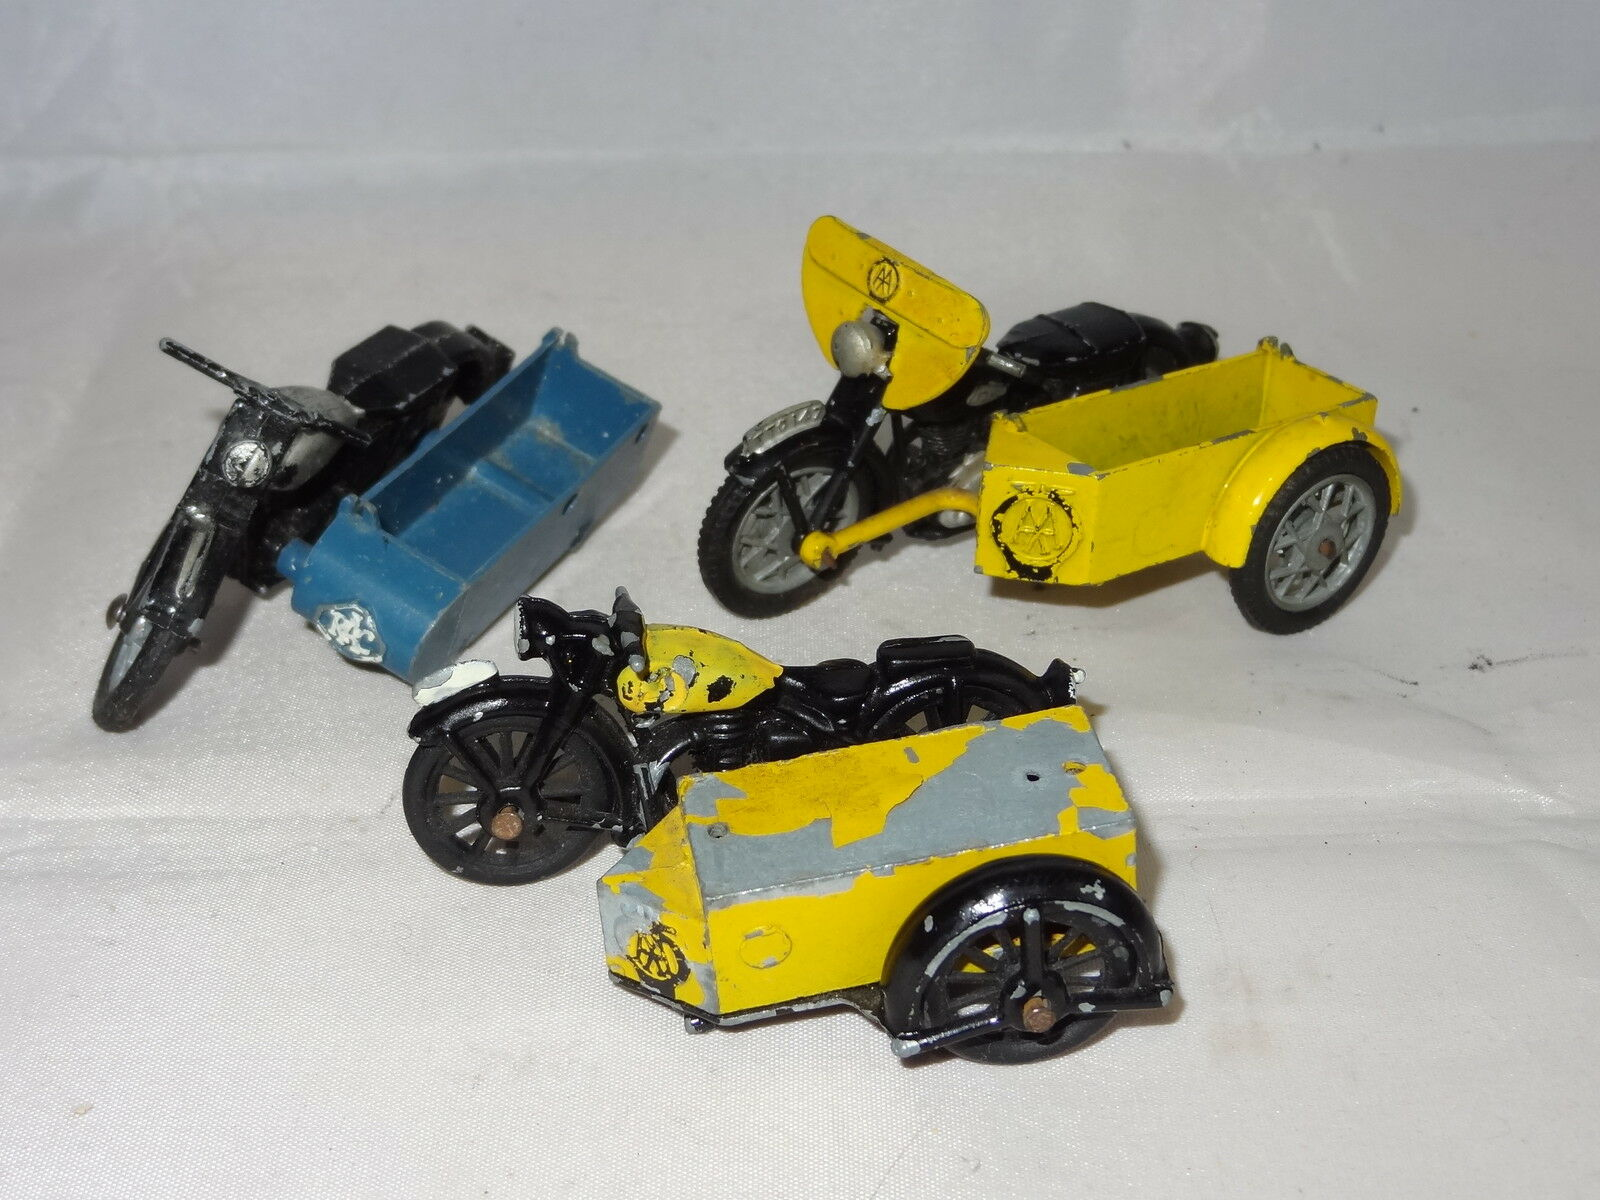 Morestone budgie benbros crescent LOT OF 3 AA RAC MOTORCYCLE AND SIDECAR